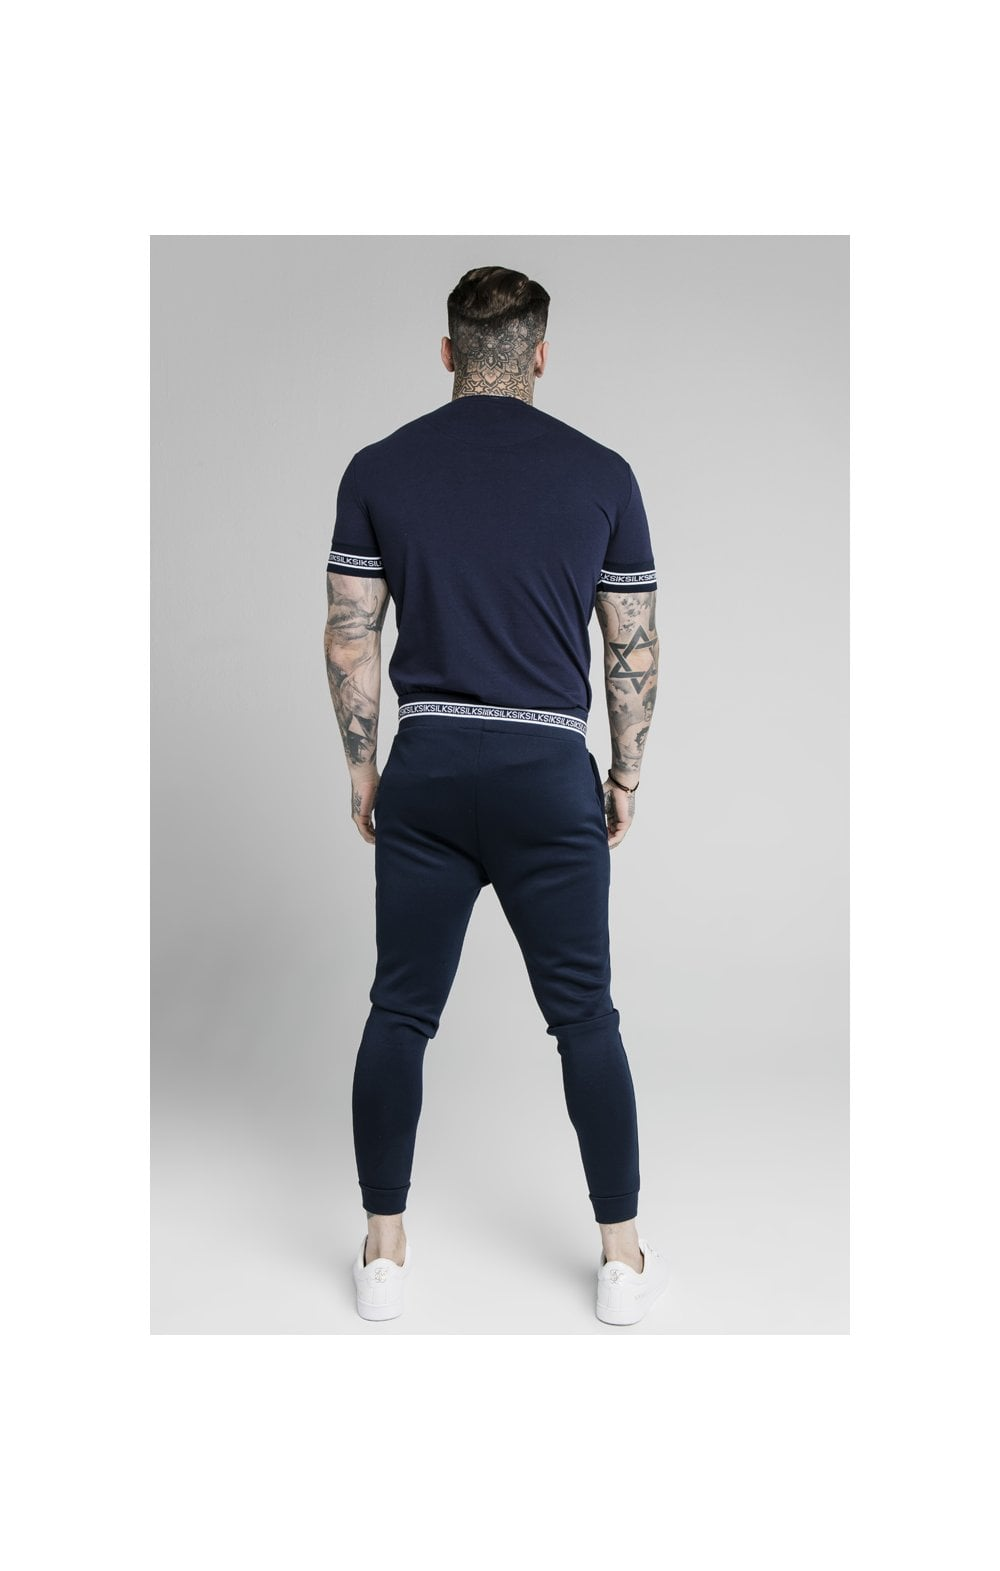 Load image into Gallery viewer, SikSilk Element Straight Hem Gym Tee – Navy & White (3)